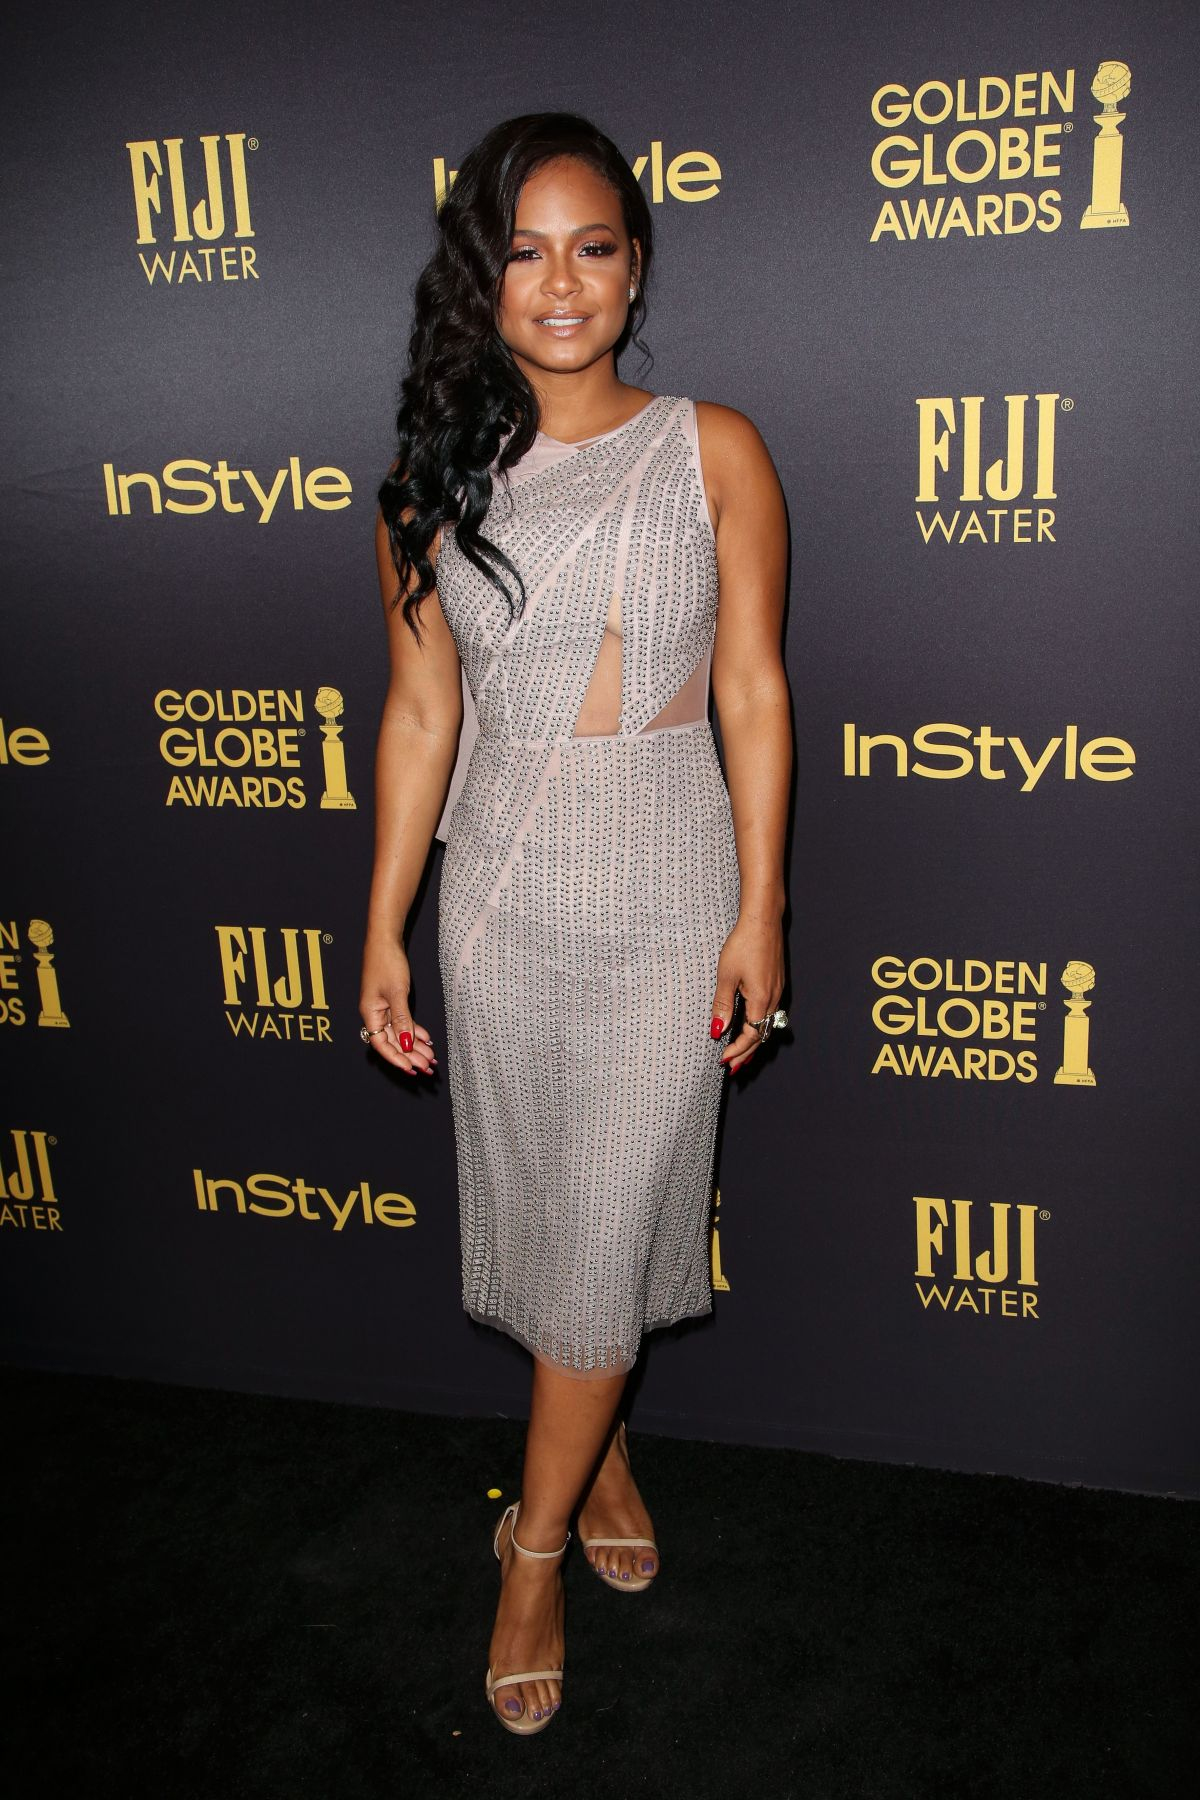 CHRISTINA MILIAN at HFPA & Instyle